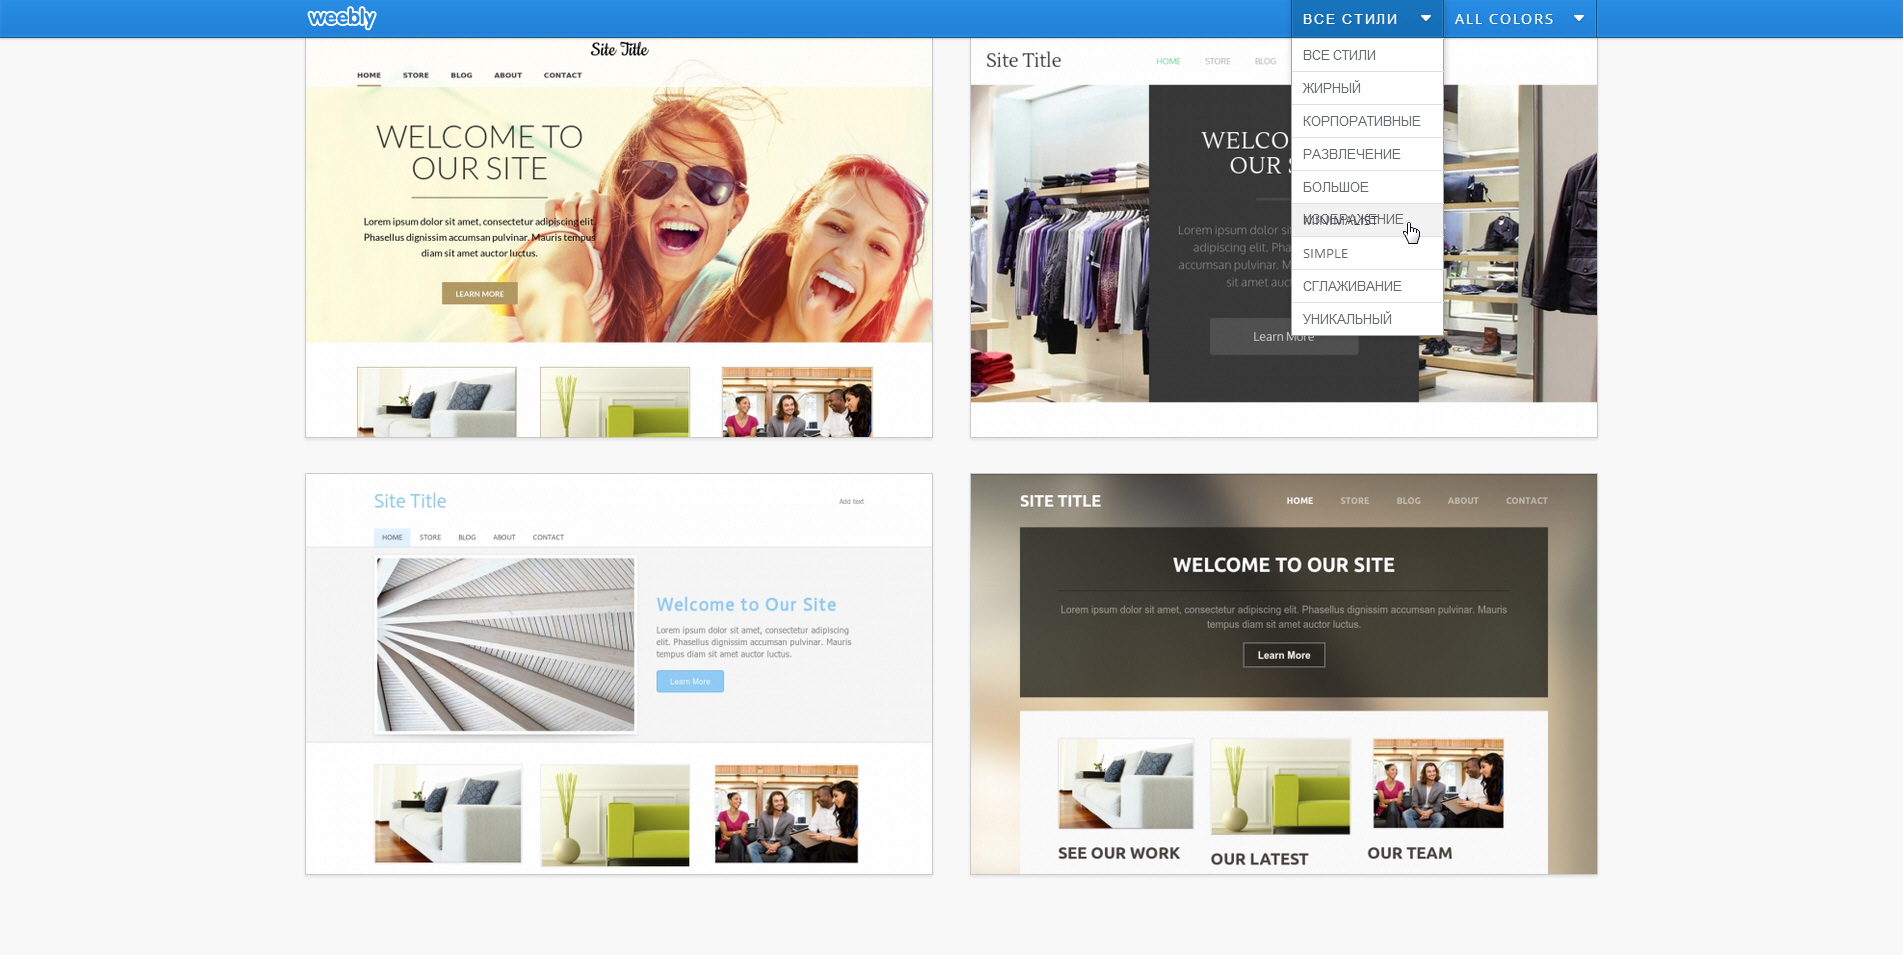 weebly2